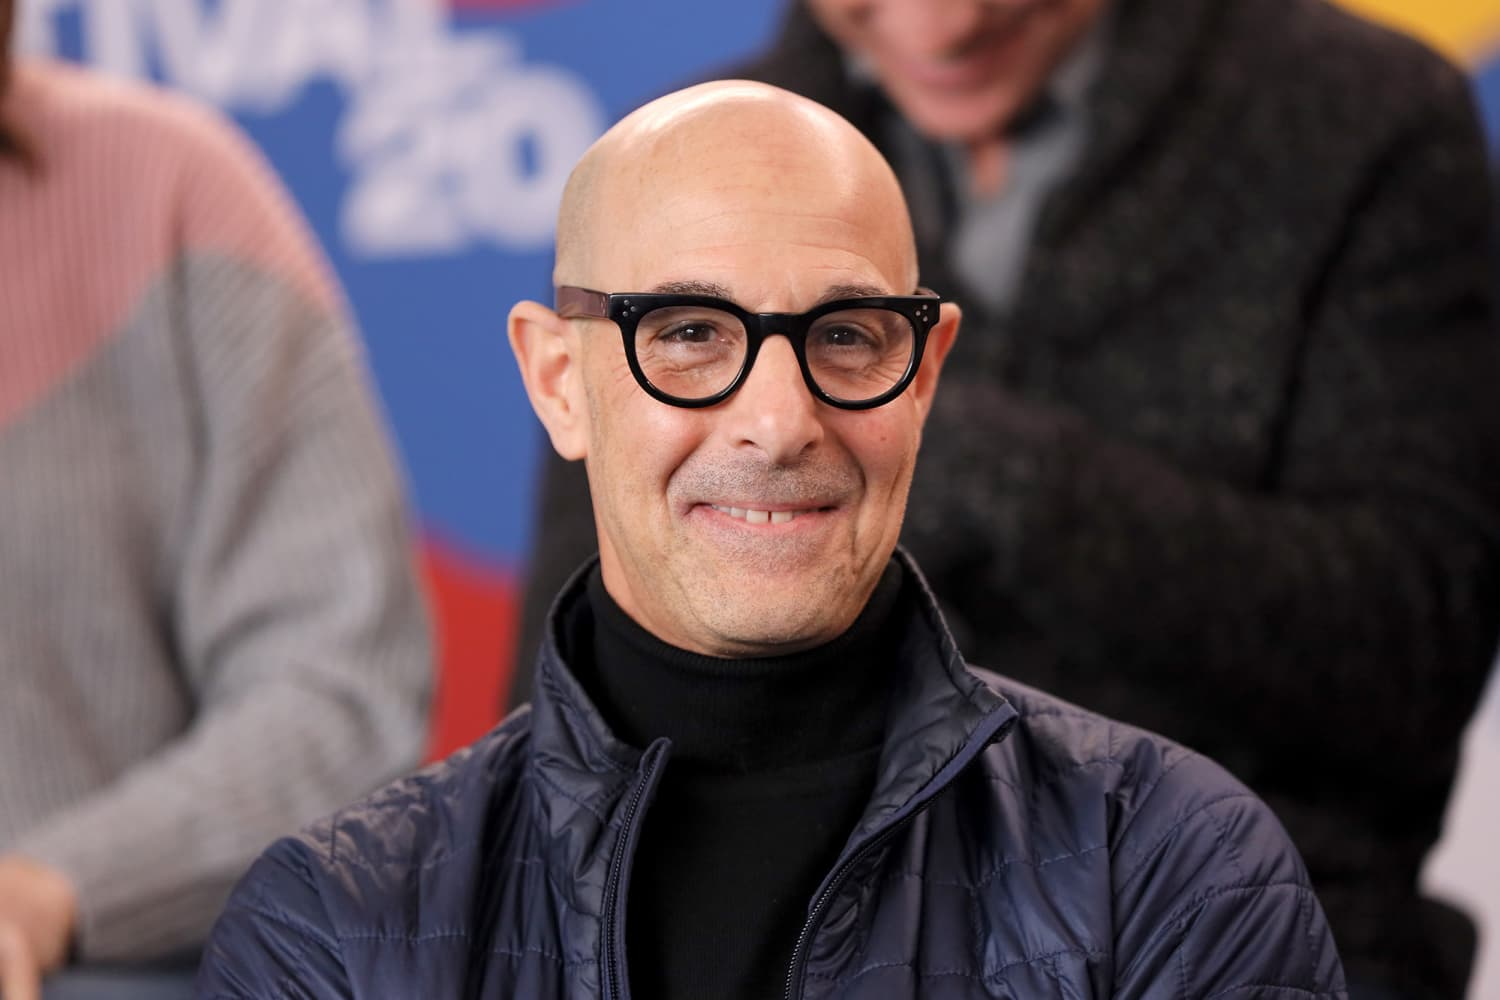 Stanley Tucci Will Star in a Culinary Docuseries Where He Explores Italy